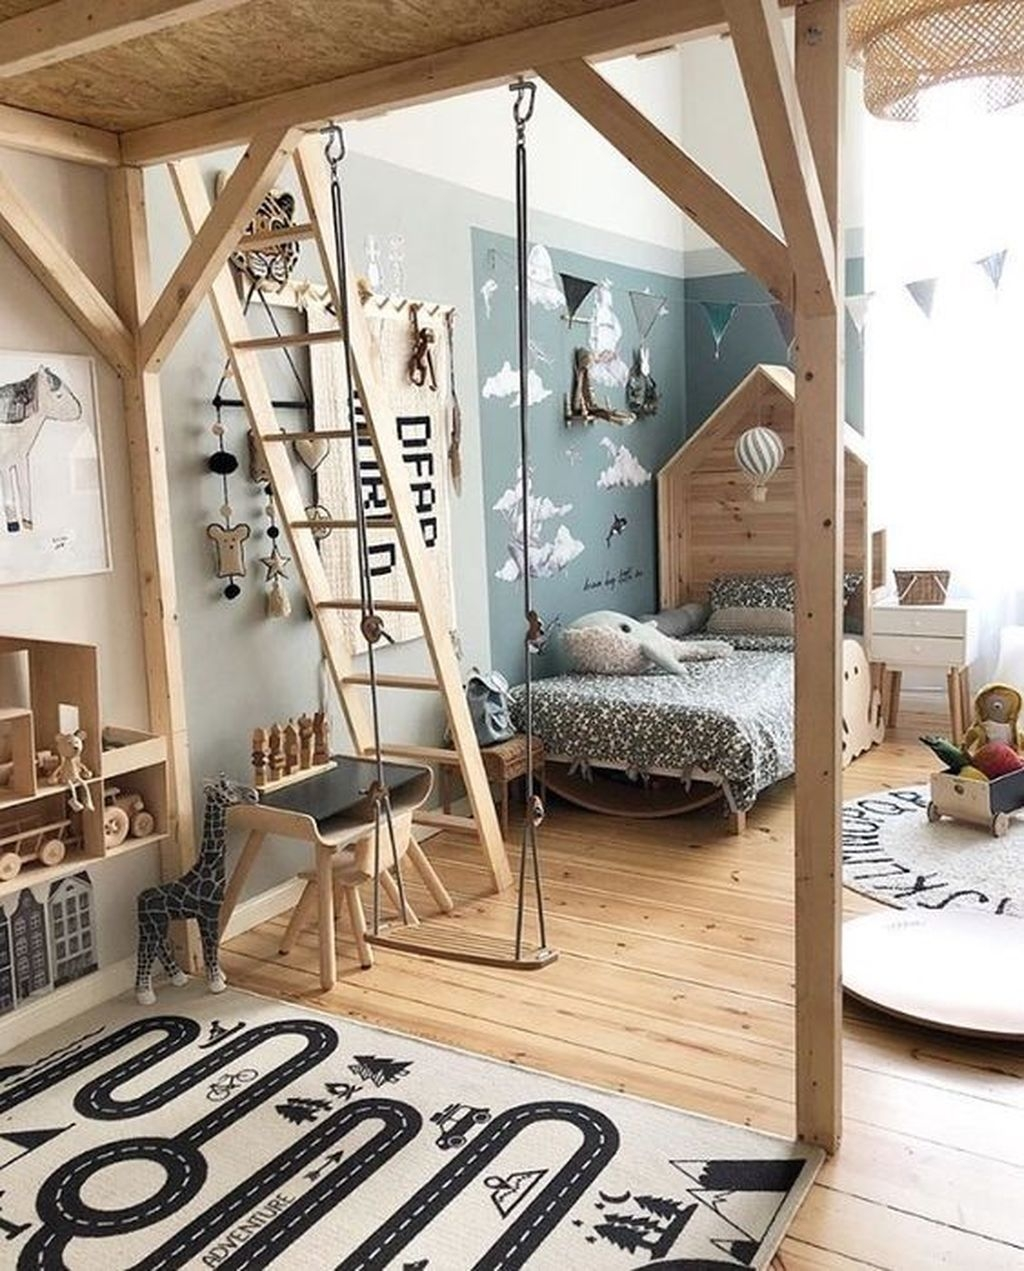 Inspiring Kids Room Design Ideas 49